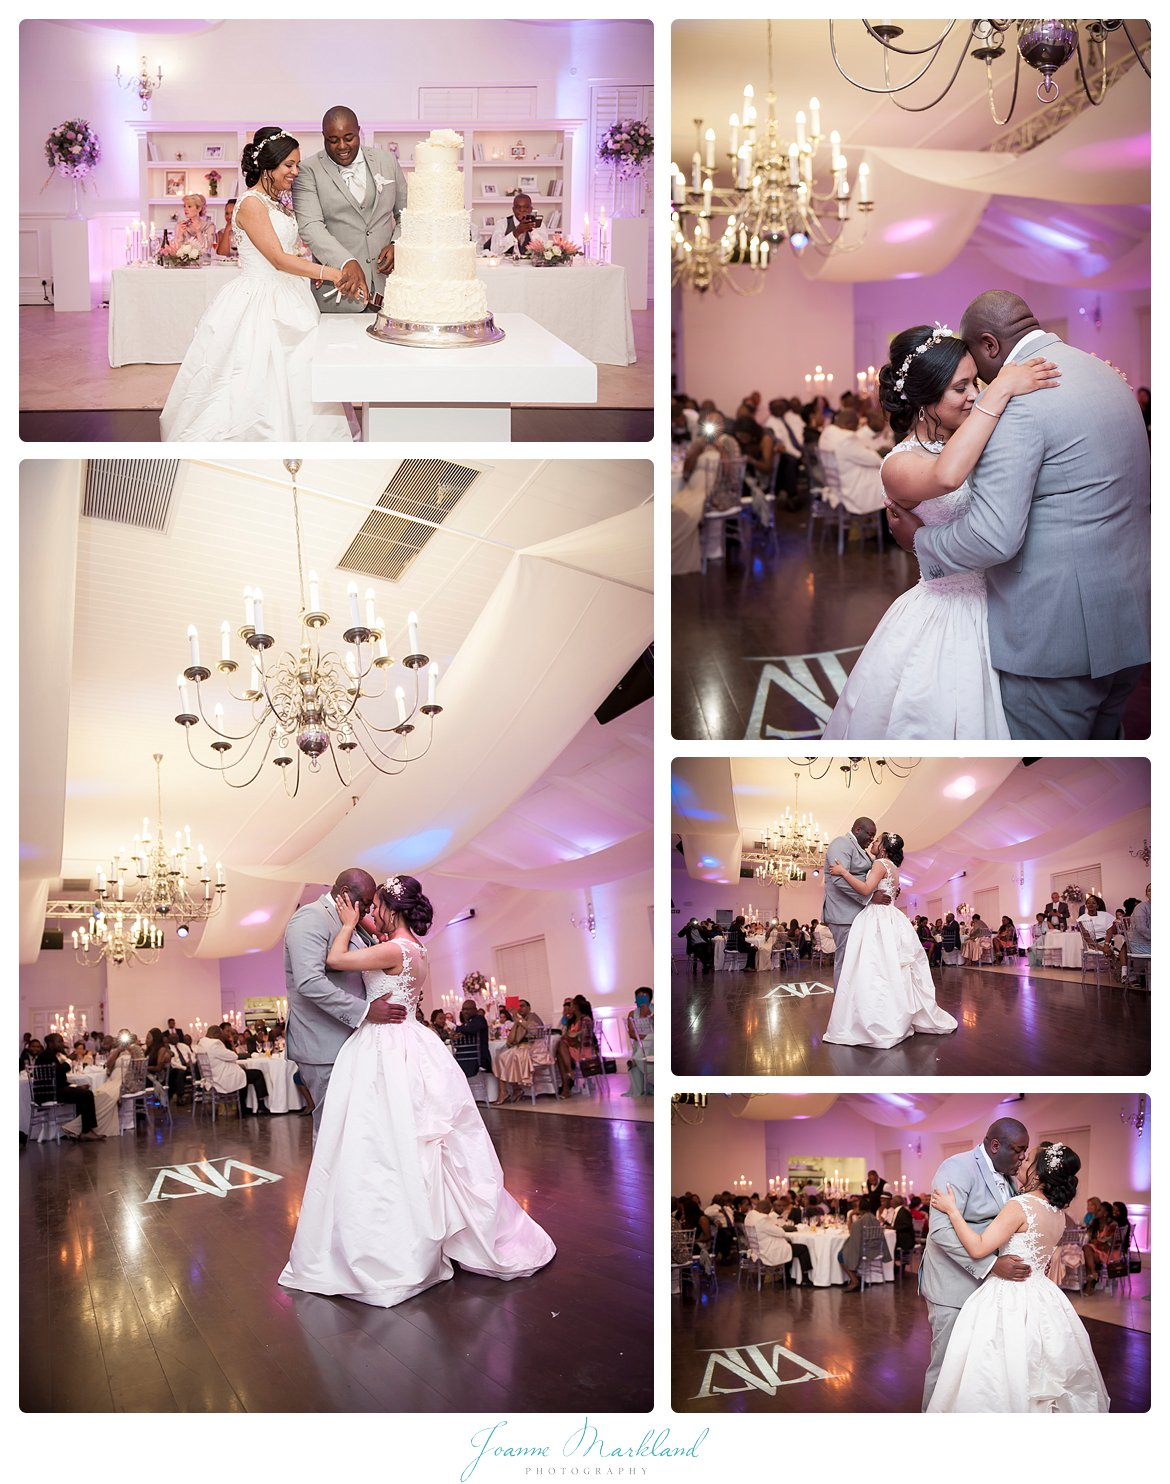 Val_de_vie_wedding_joanne_markland_photography_paarl-057